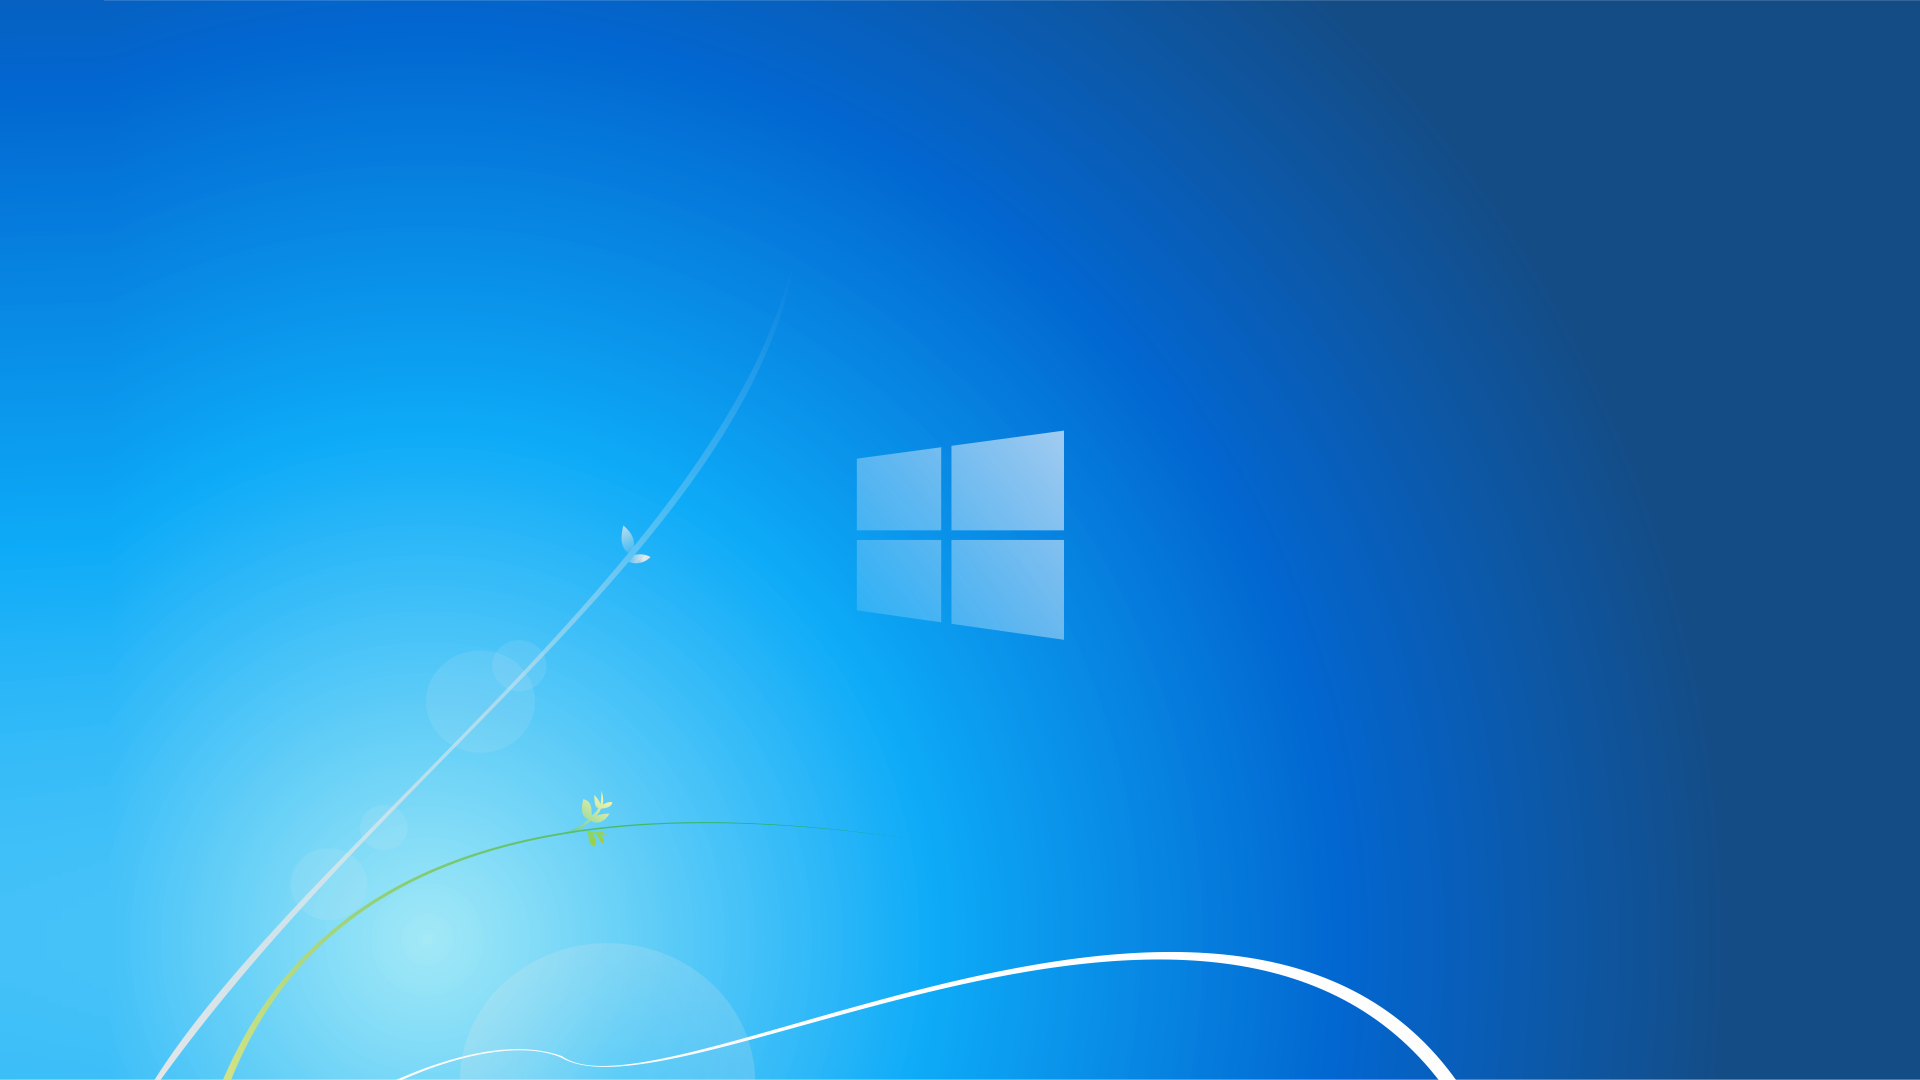 Windows 7 Reimagined Wallpaper By Gifteddeviantdeviantart On DeviantART